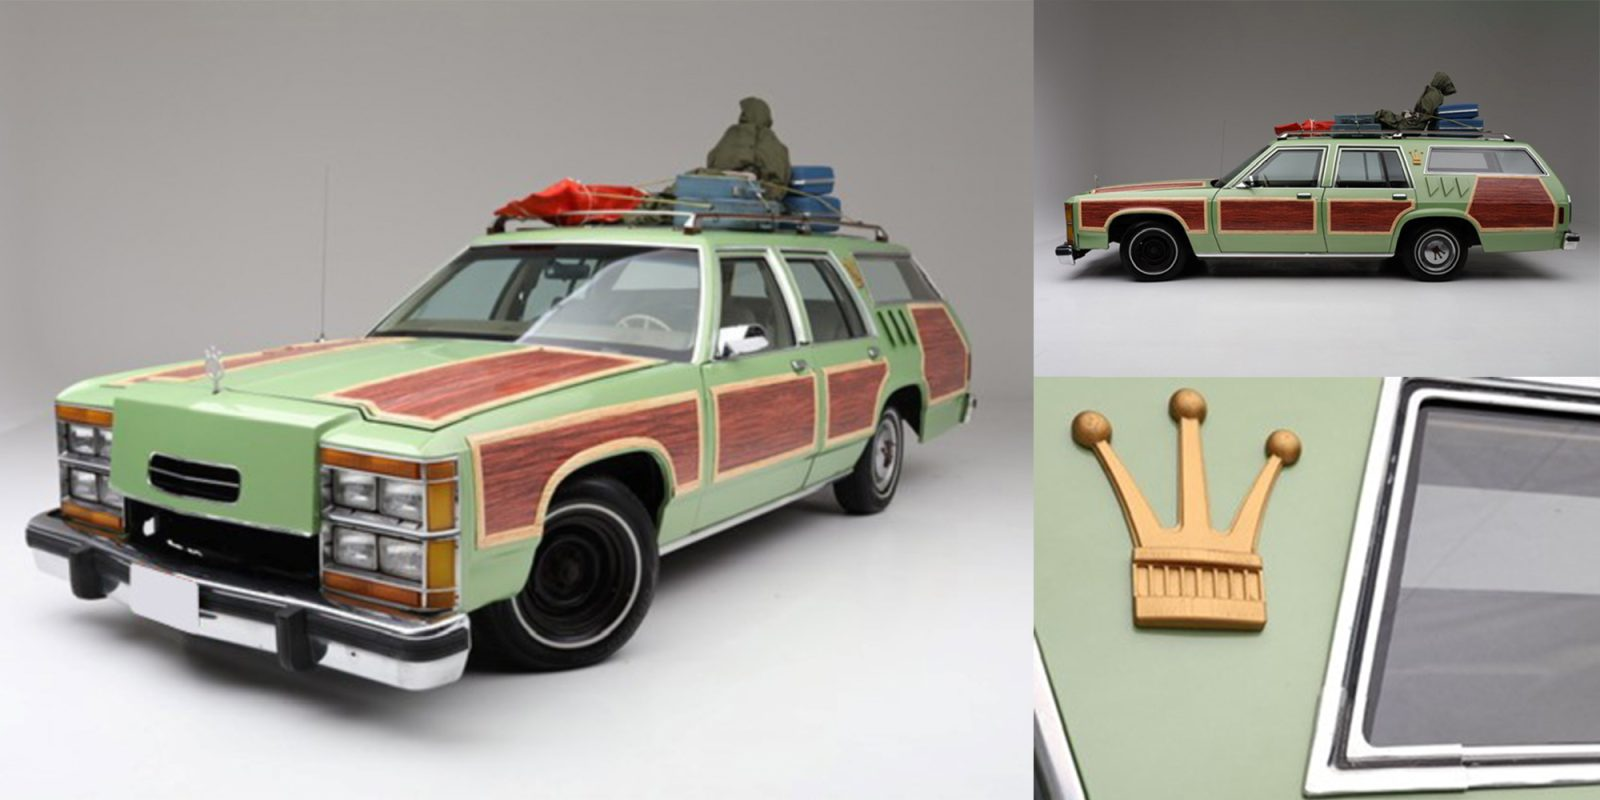 National Lampoon S Vaction Station Wagon Goes Up For Auction 9to5toys